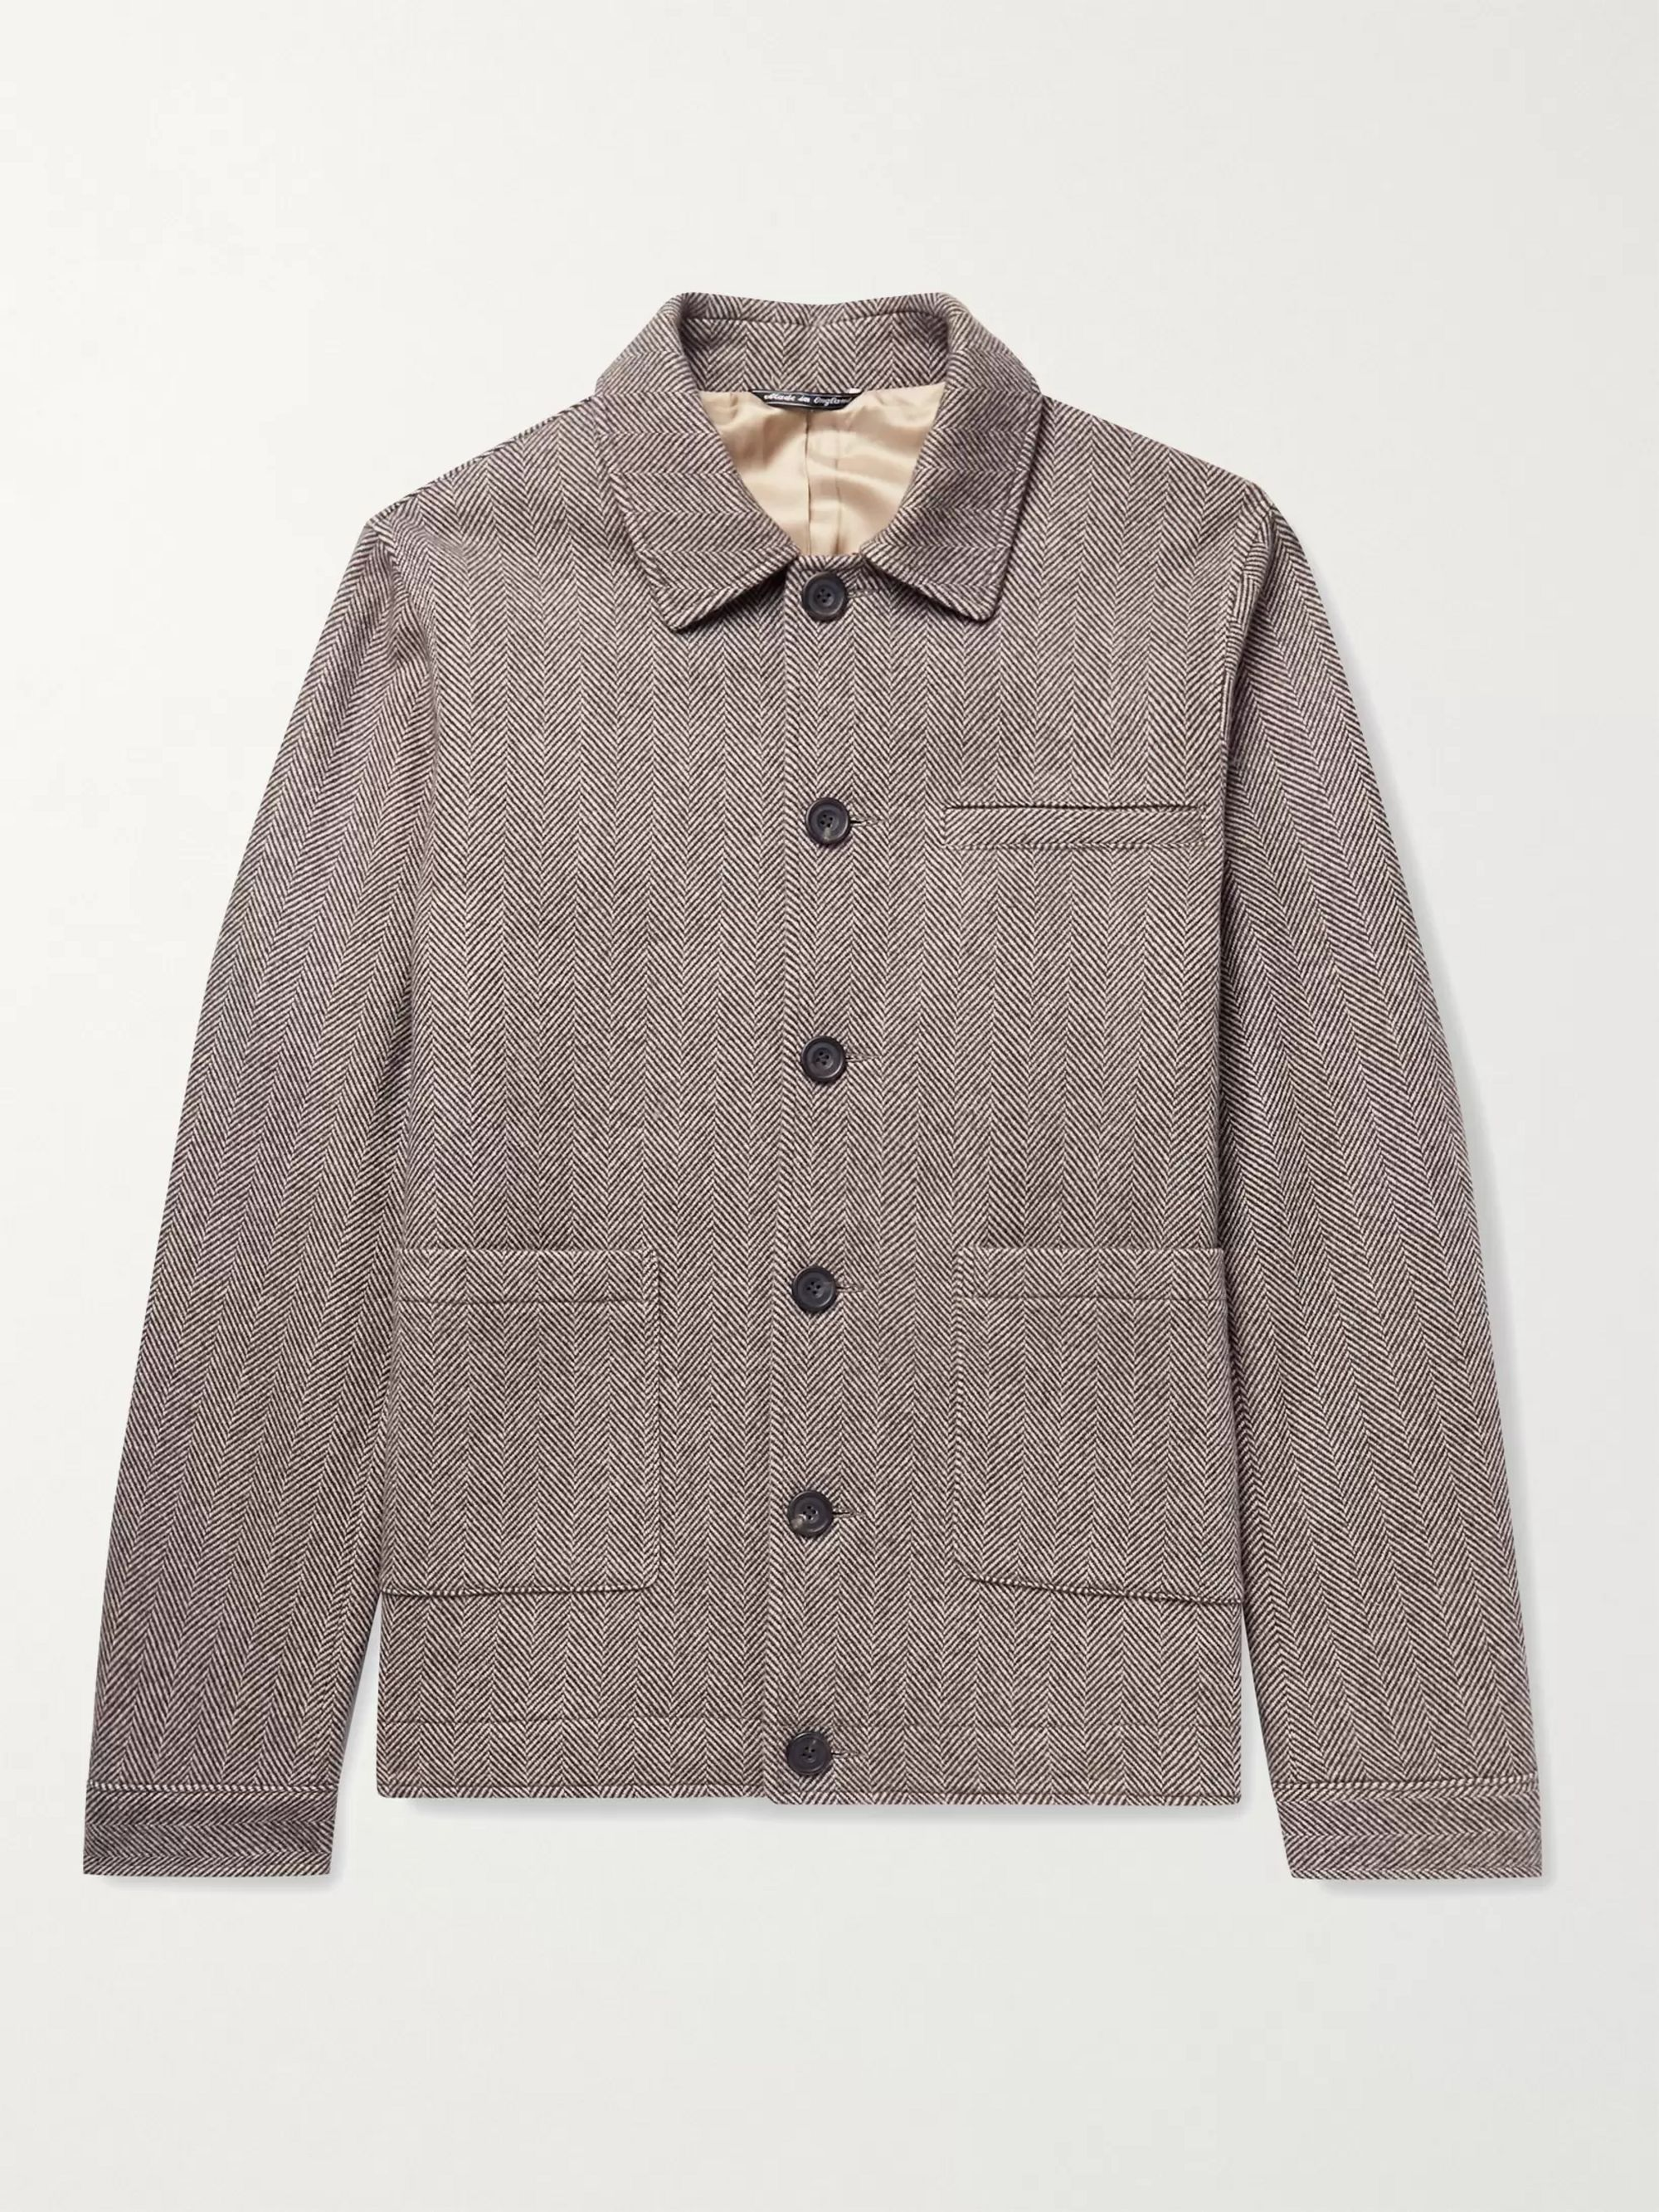 RICHARD JAMES Herringbone Wool Jacket